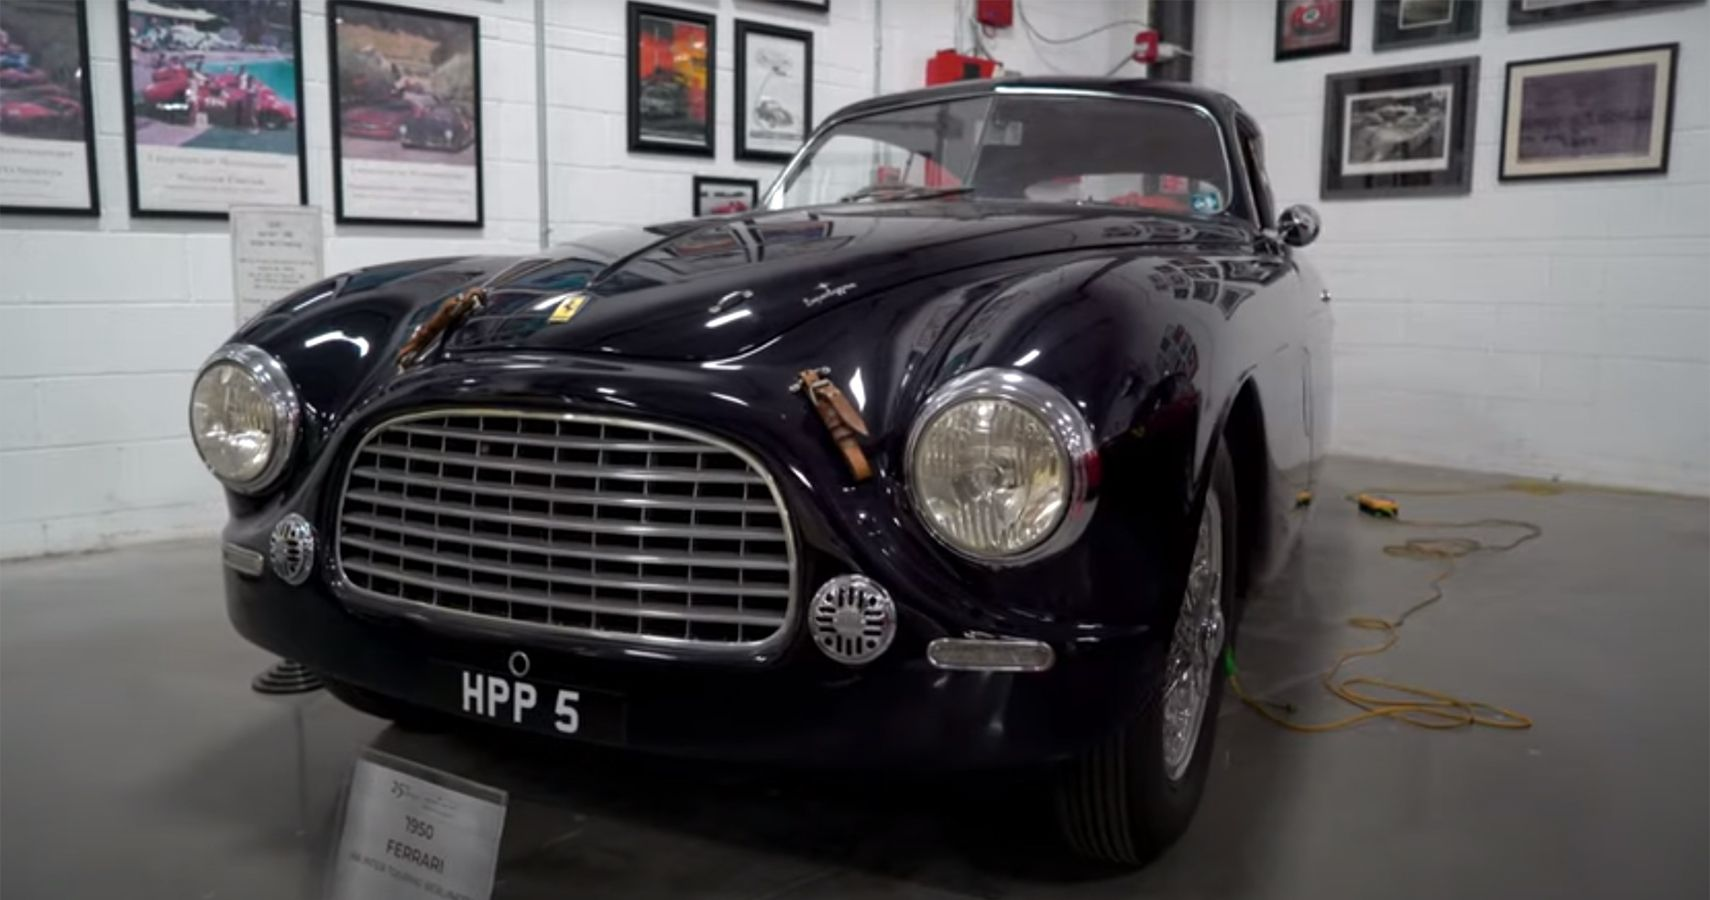 Tour This Staggering Sports Car Collection Boasting Classic Ferraris, Porsches And More